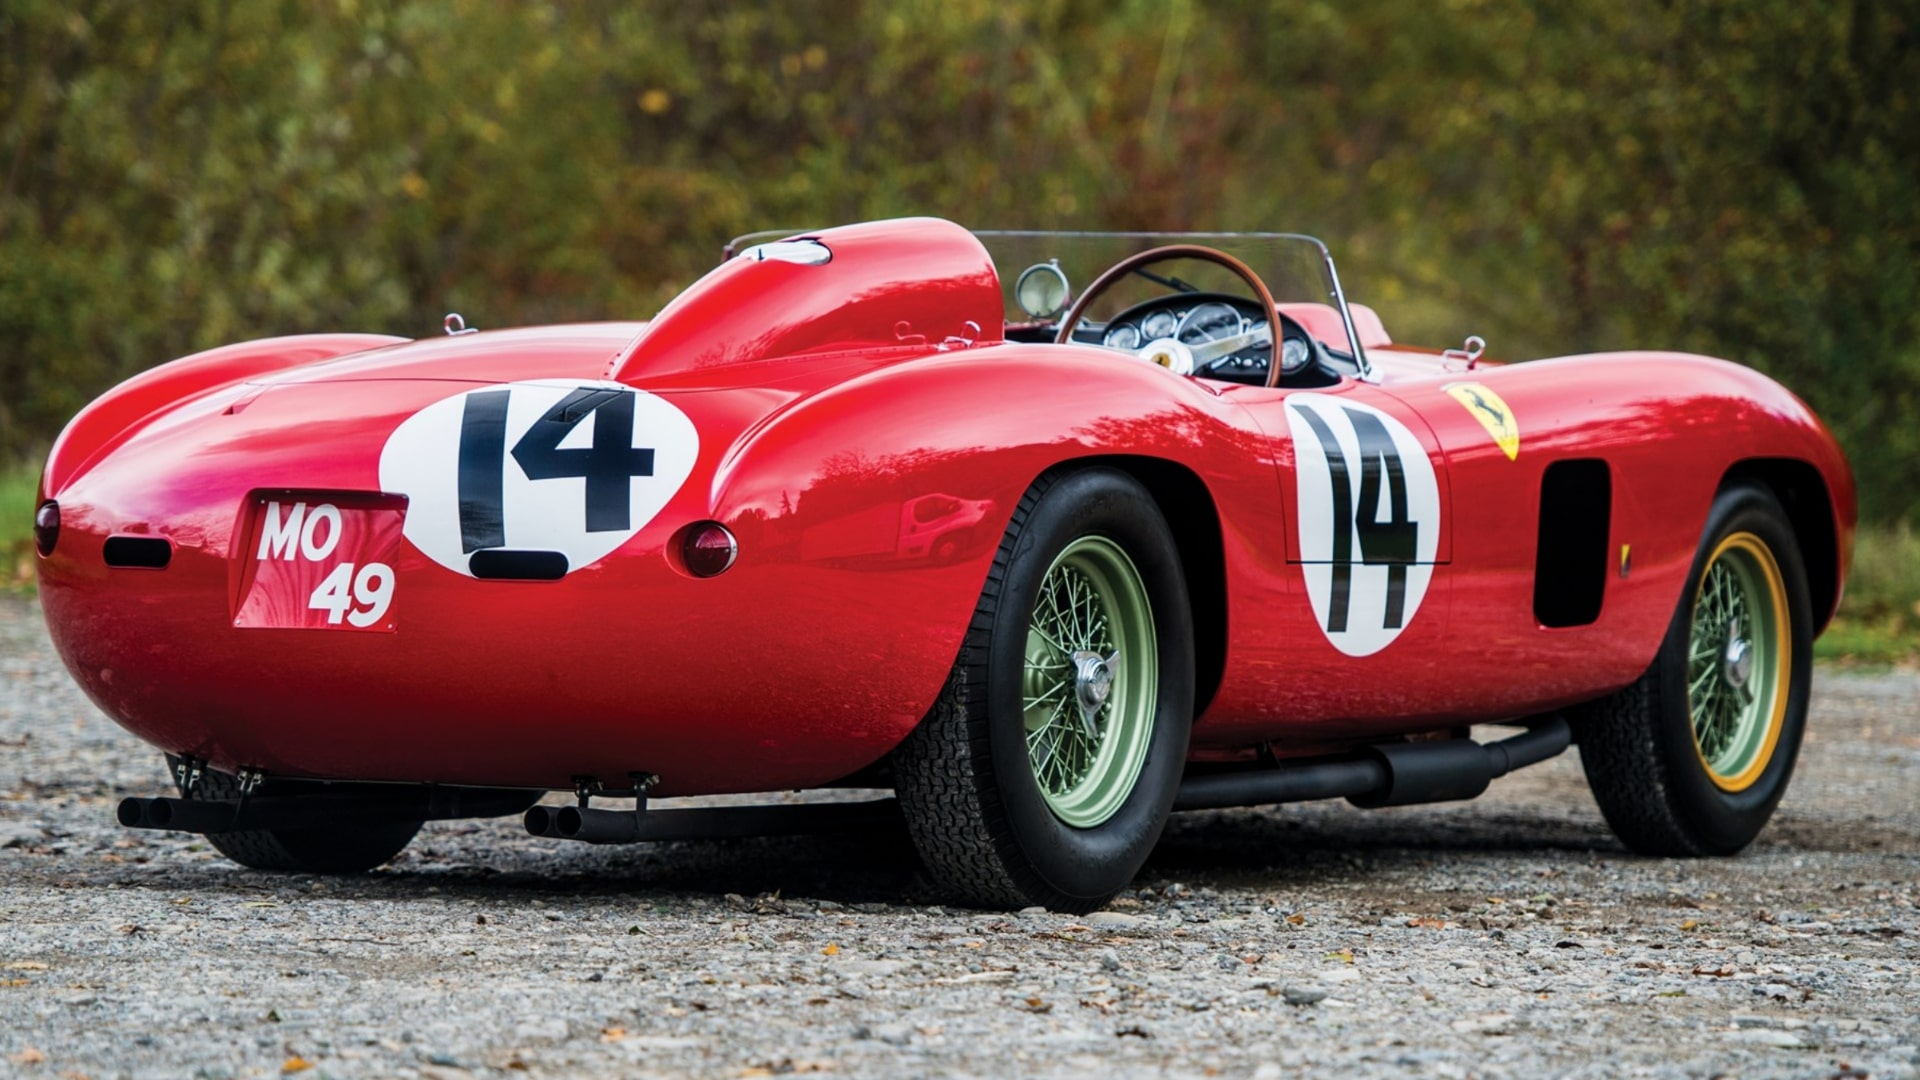 Classic Ferrari with a famous past sells for £17.5 million